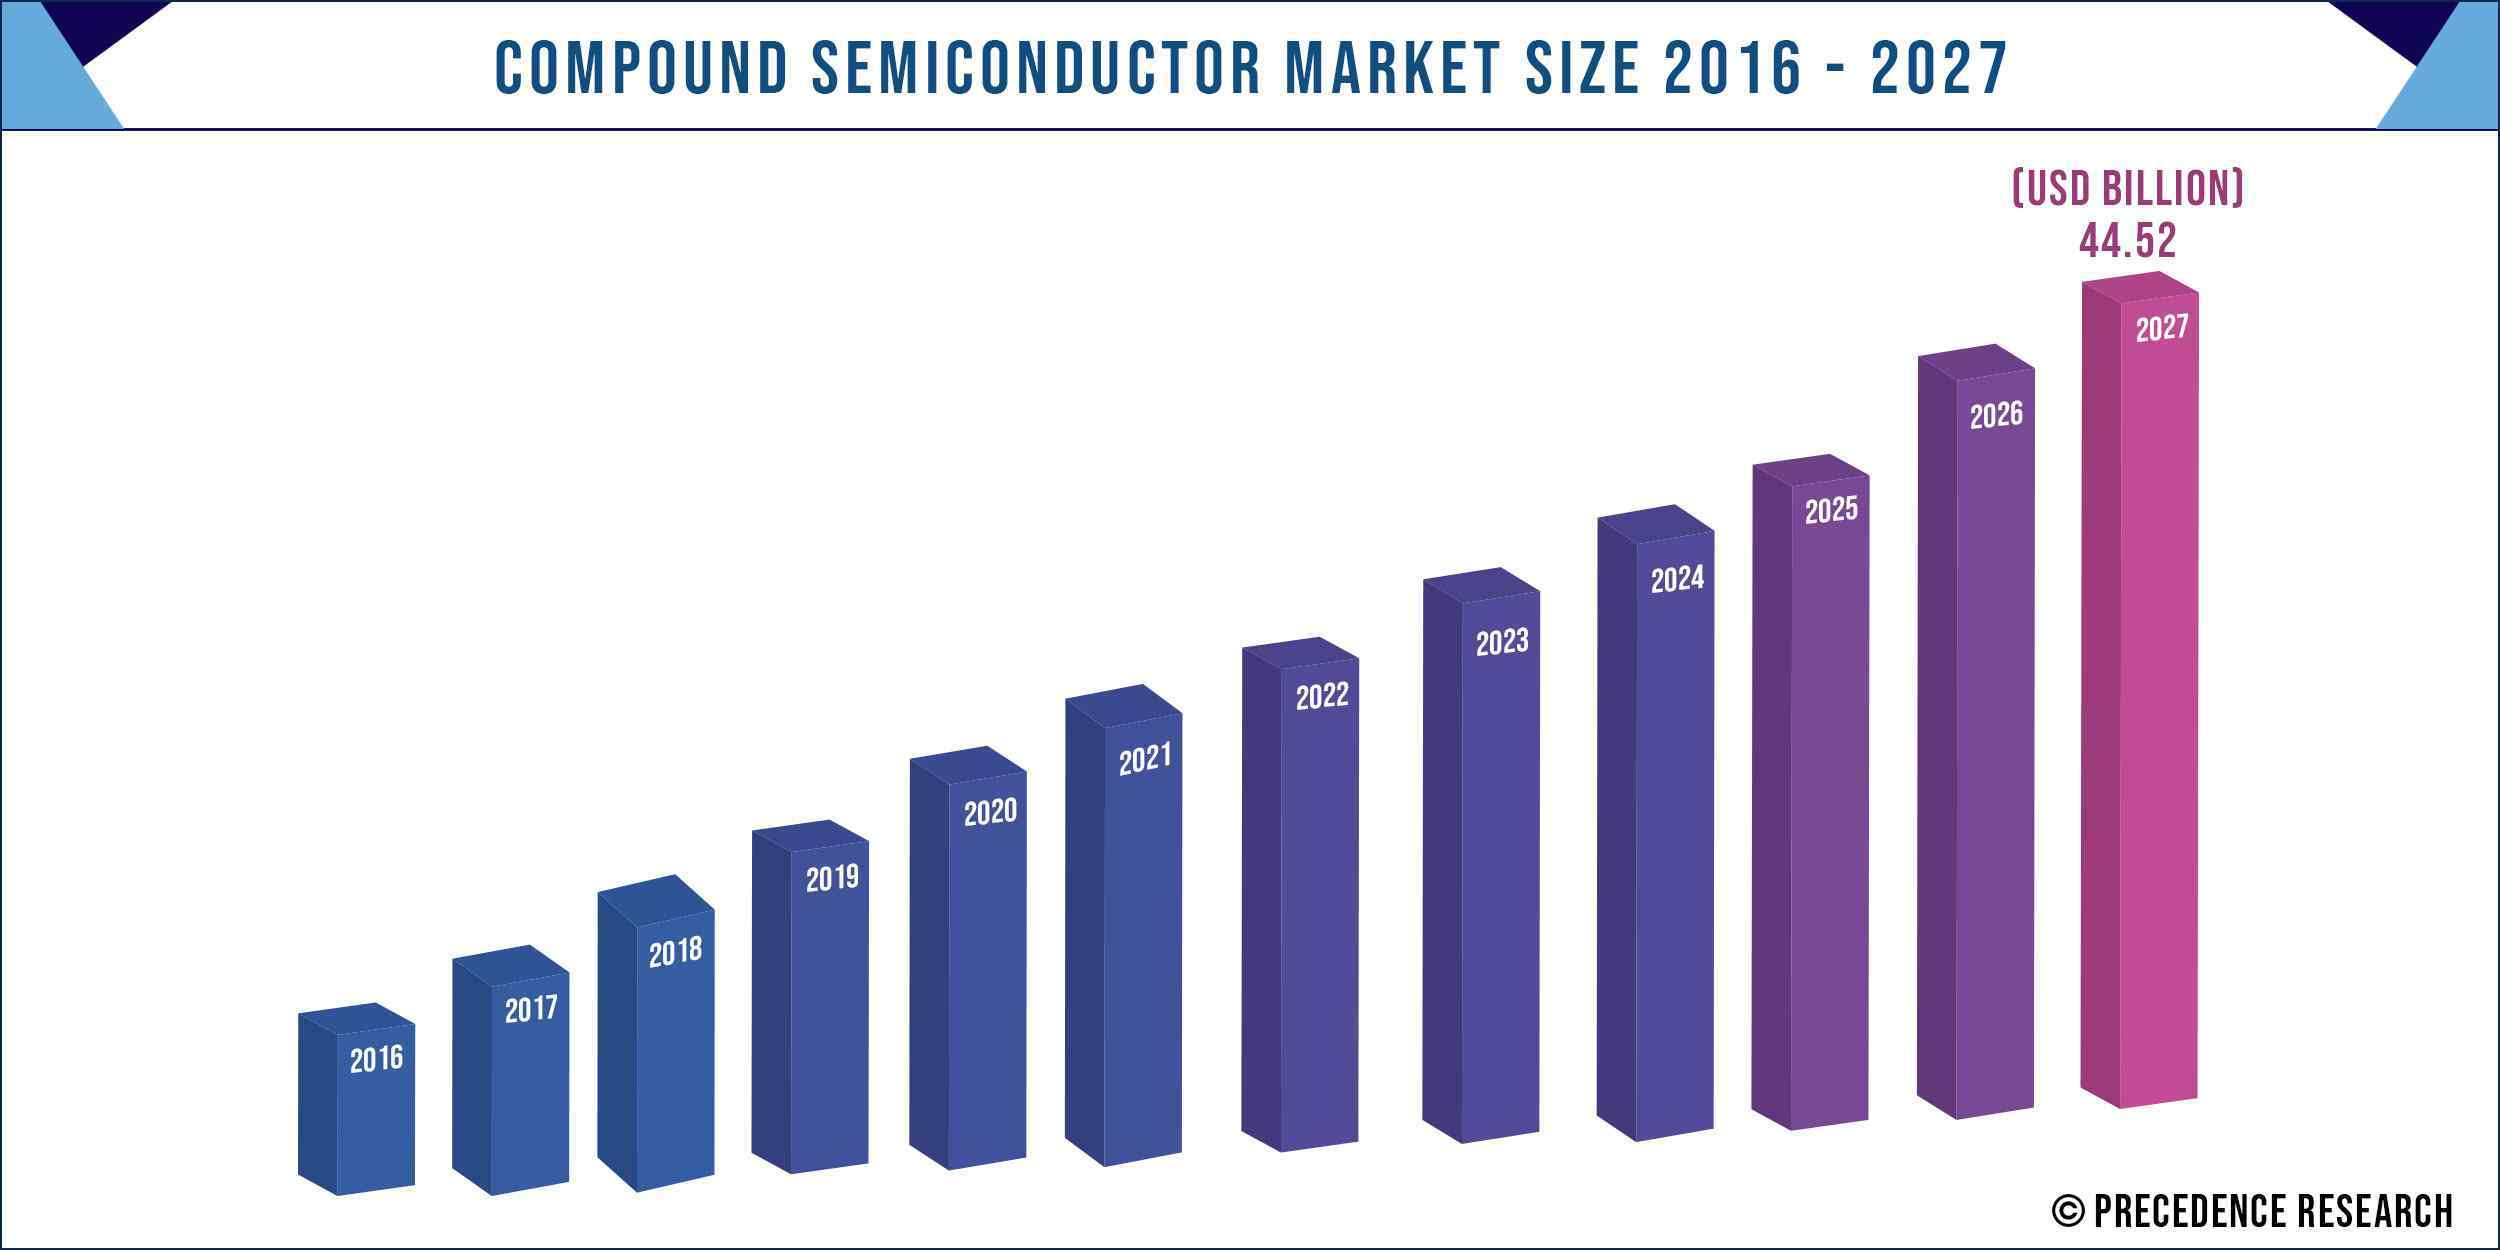 Compound Semiconductor Market Size 2016 to 2027